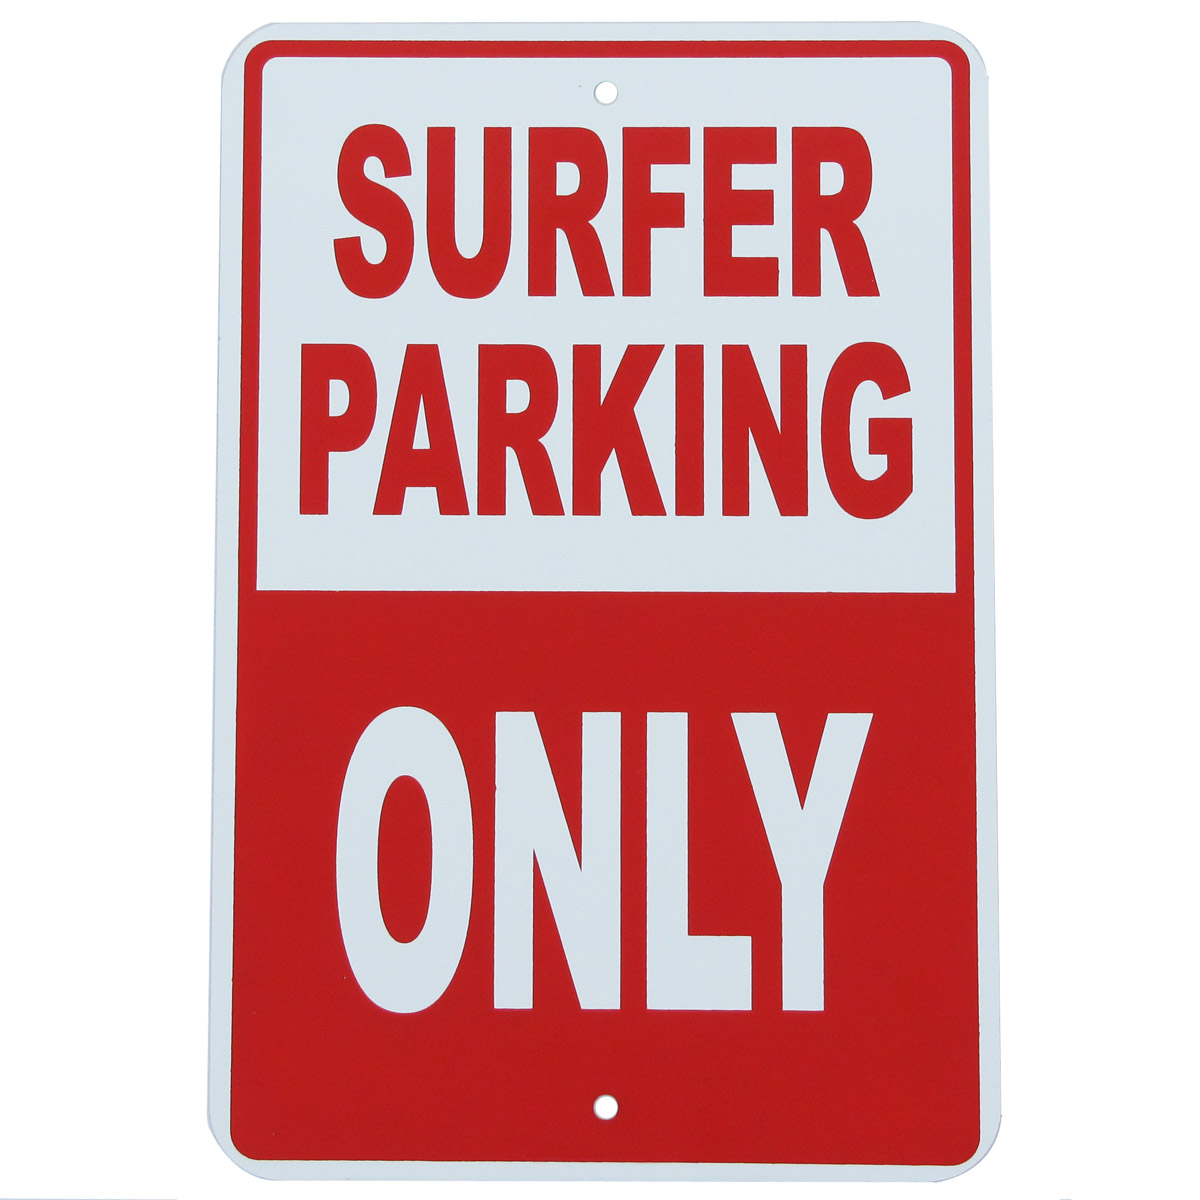 SURFER PARKING ONLY Tin Metal Wall Sign Bedroom Dorm Rec Room Surfing Surf Decor